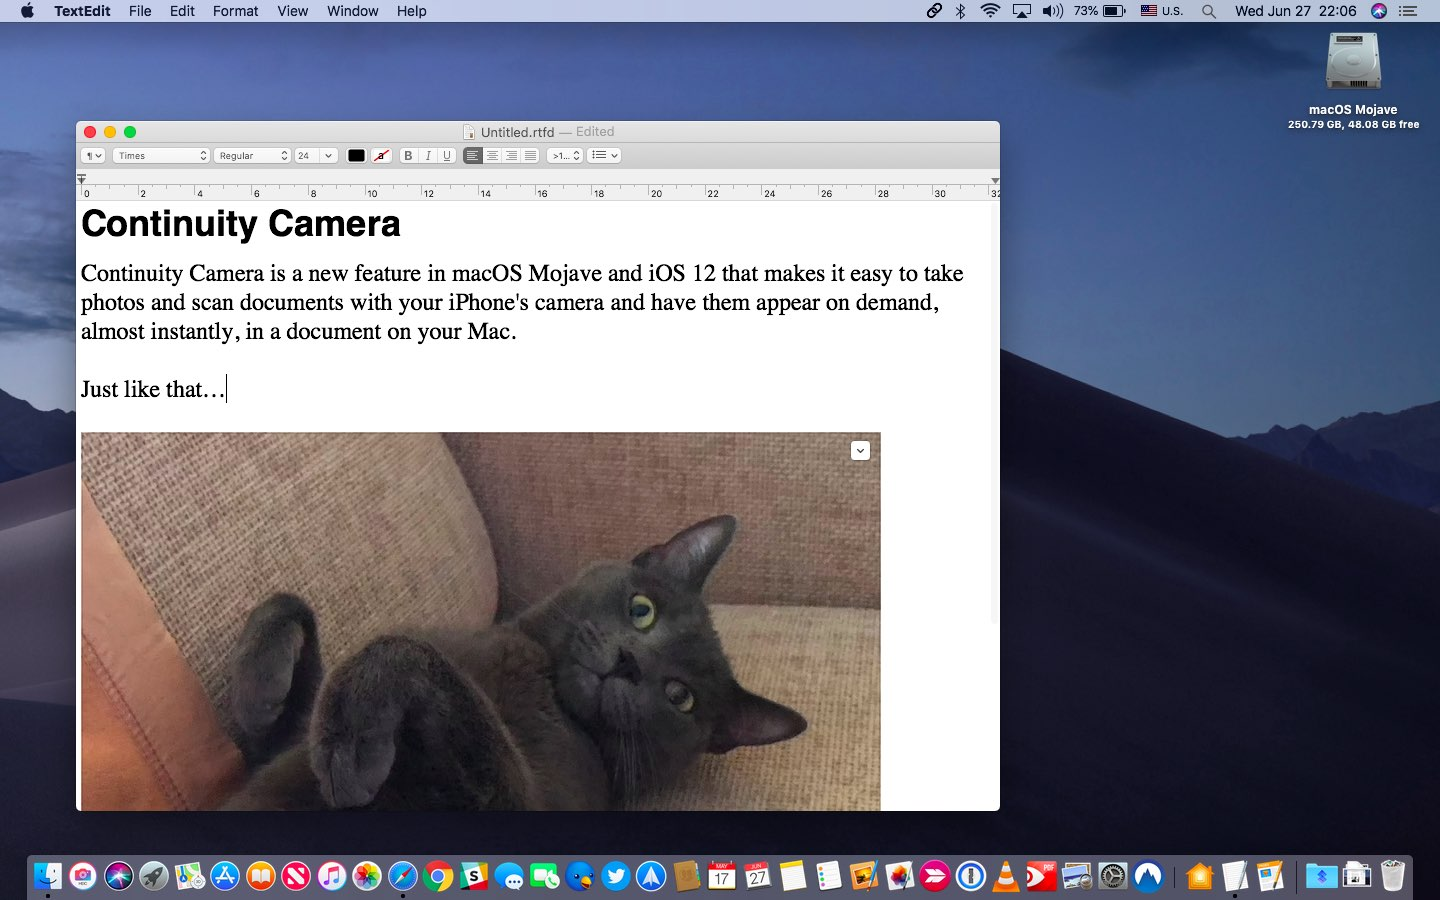 How to take photos and scan documents with iPhone—on your Mac